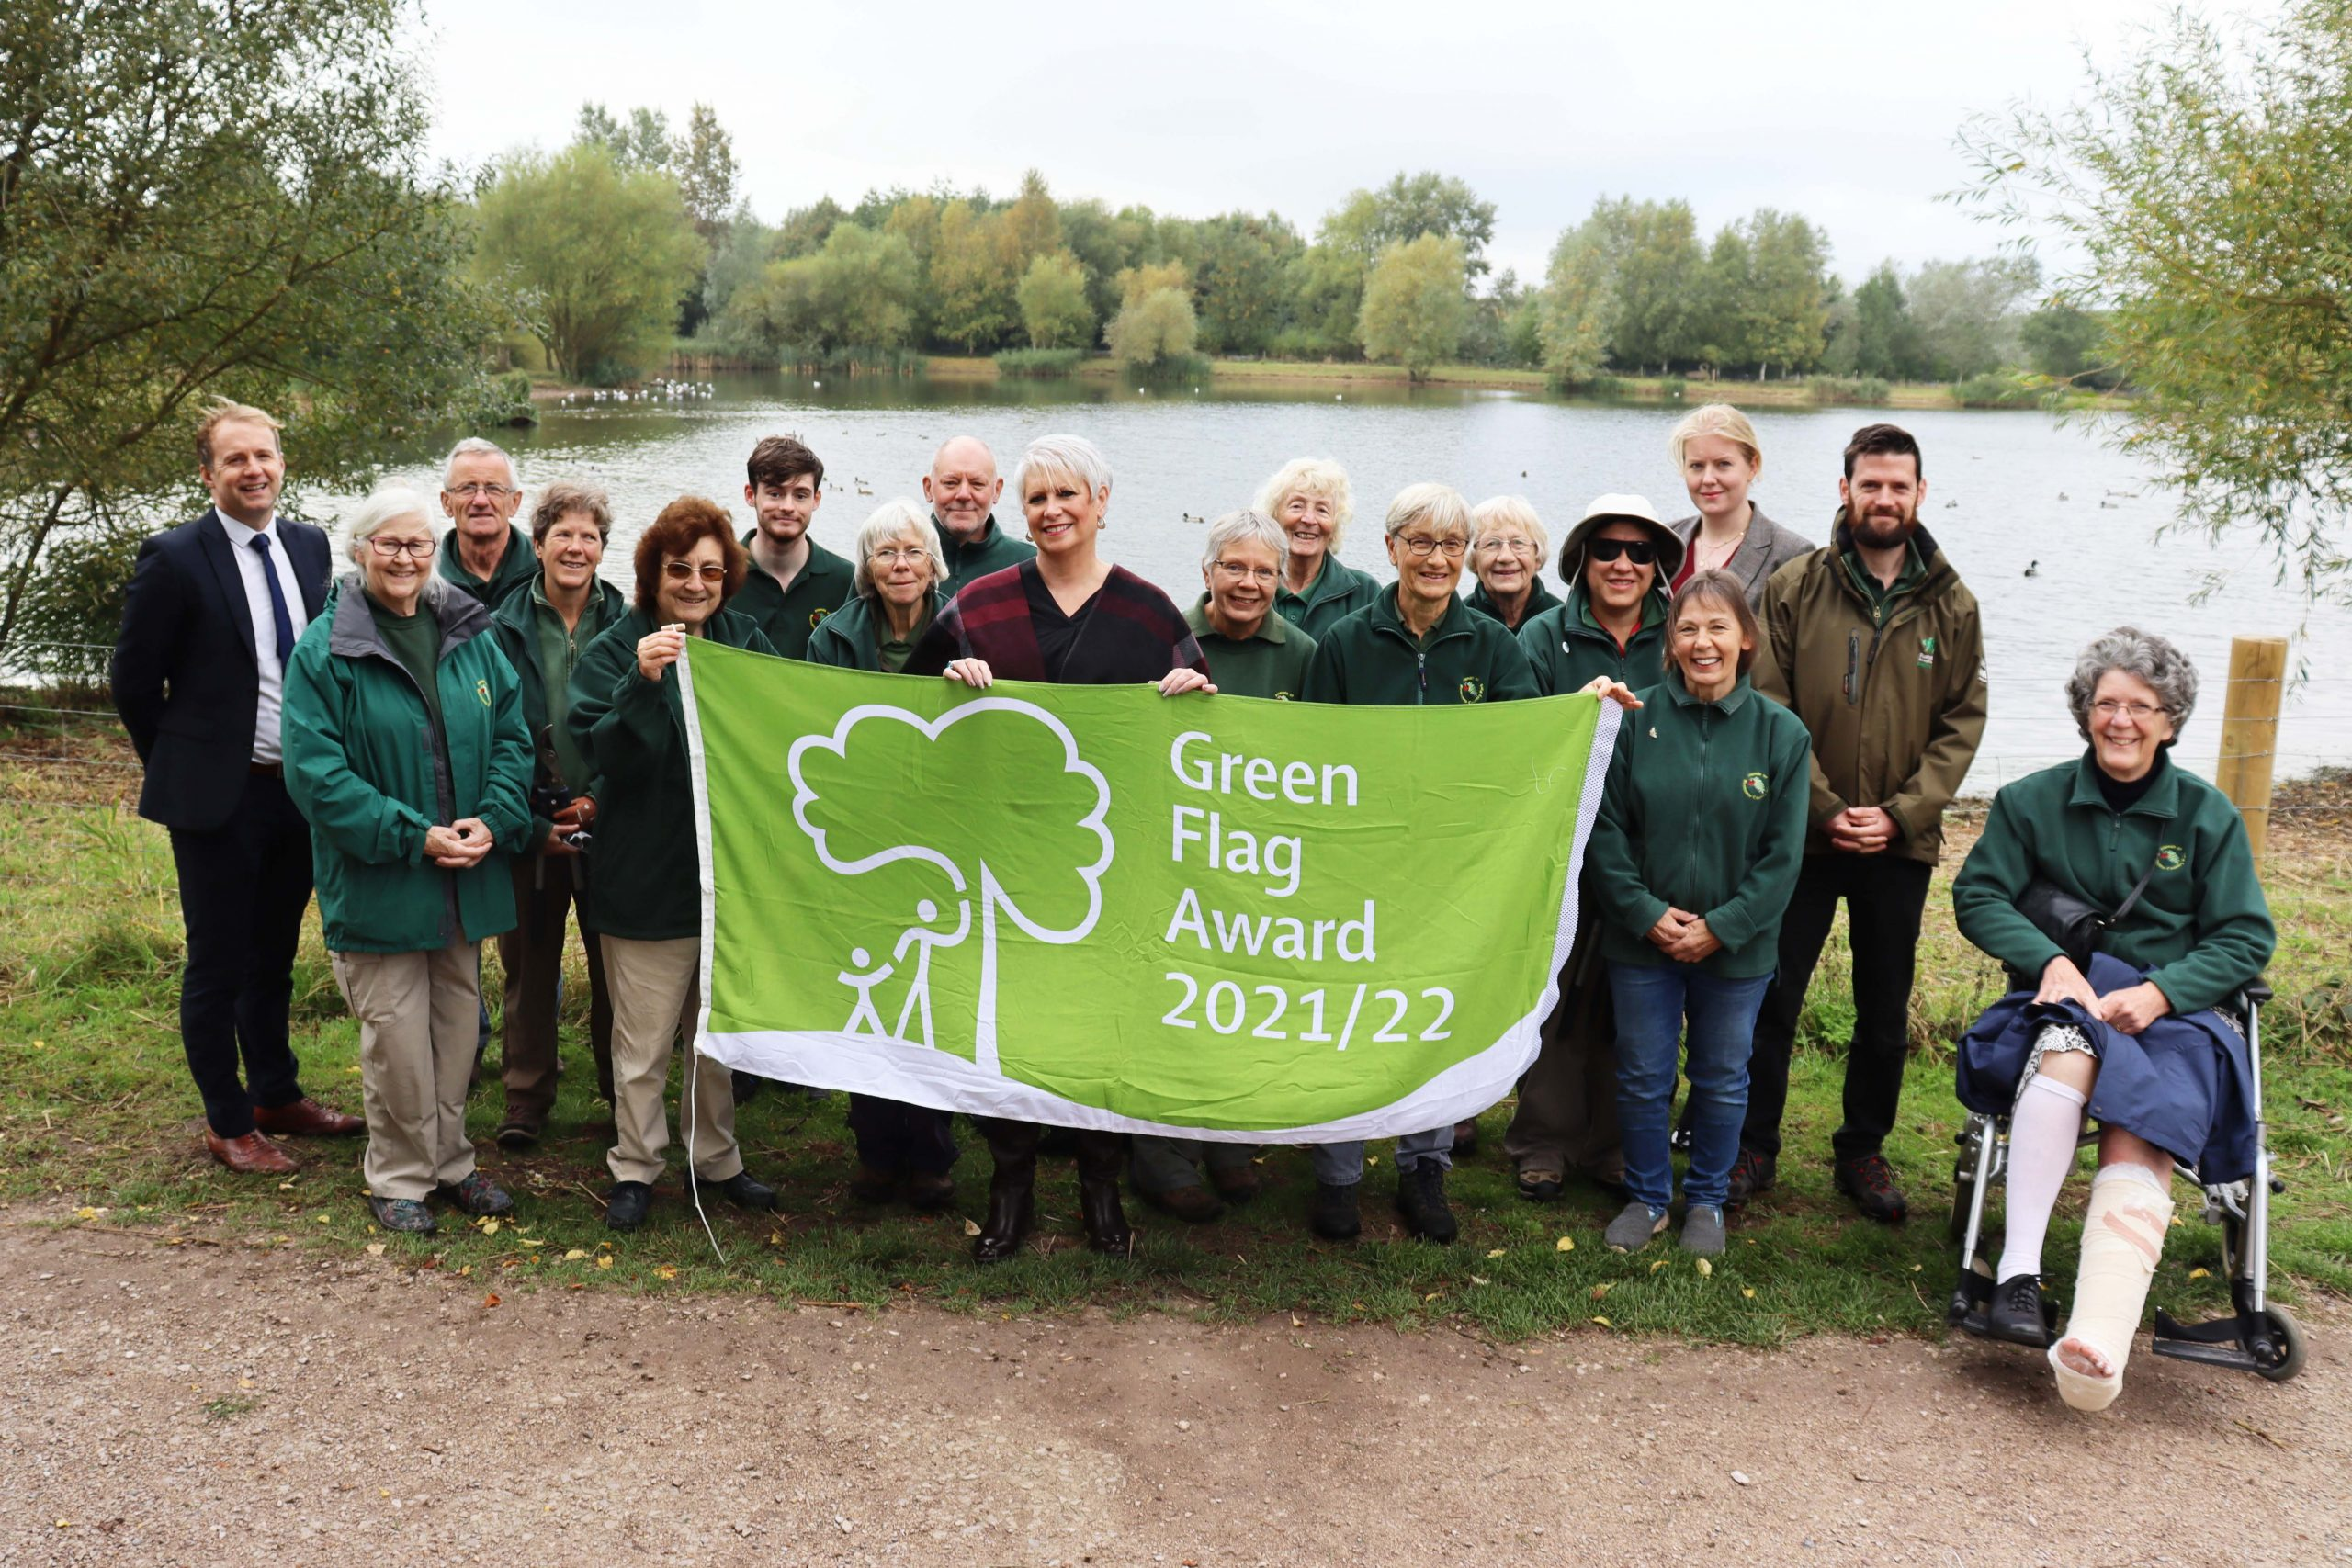 Cllr Abby Brennan joined volunteers and RBC representatives to celebrate the 15th green flag award scaled